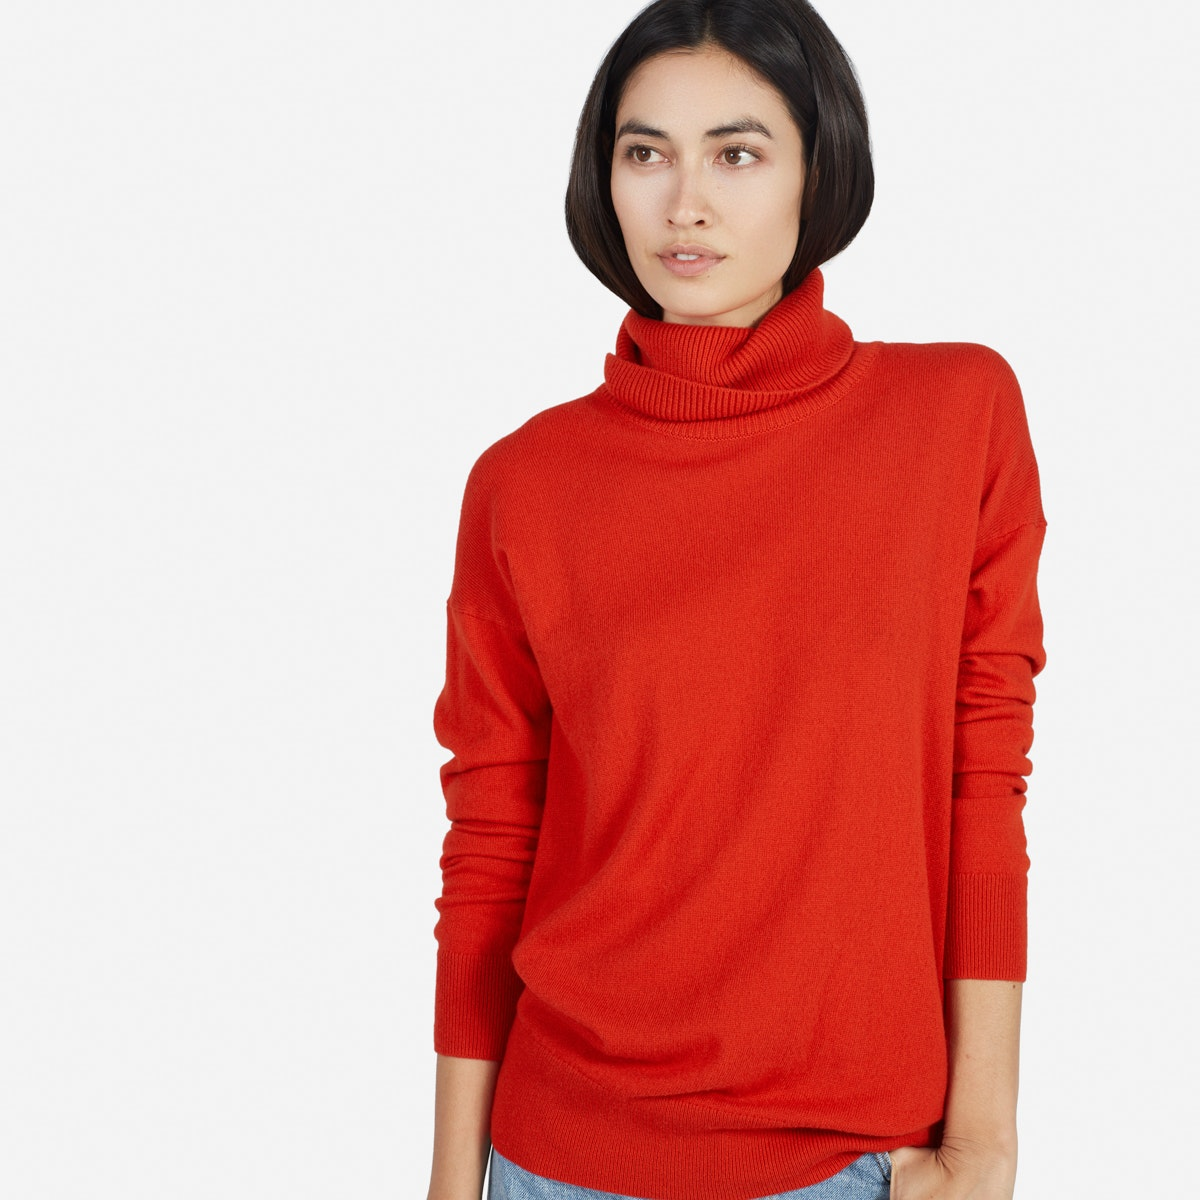 The Cashmere Turtleneck - Everlane